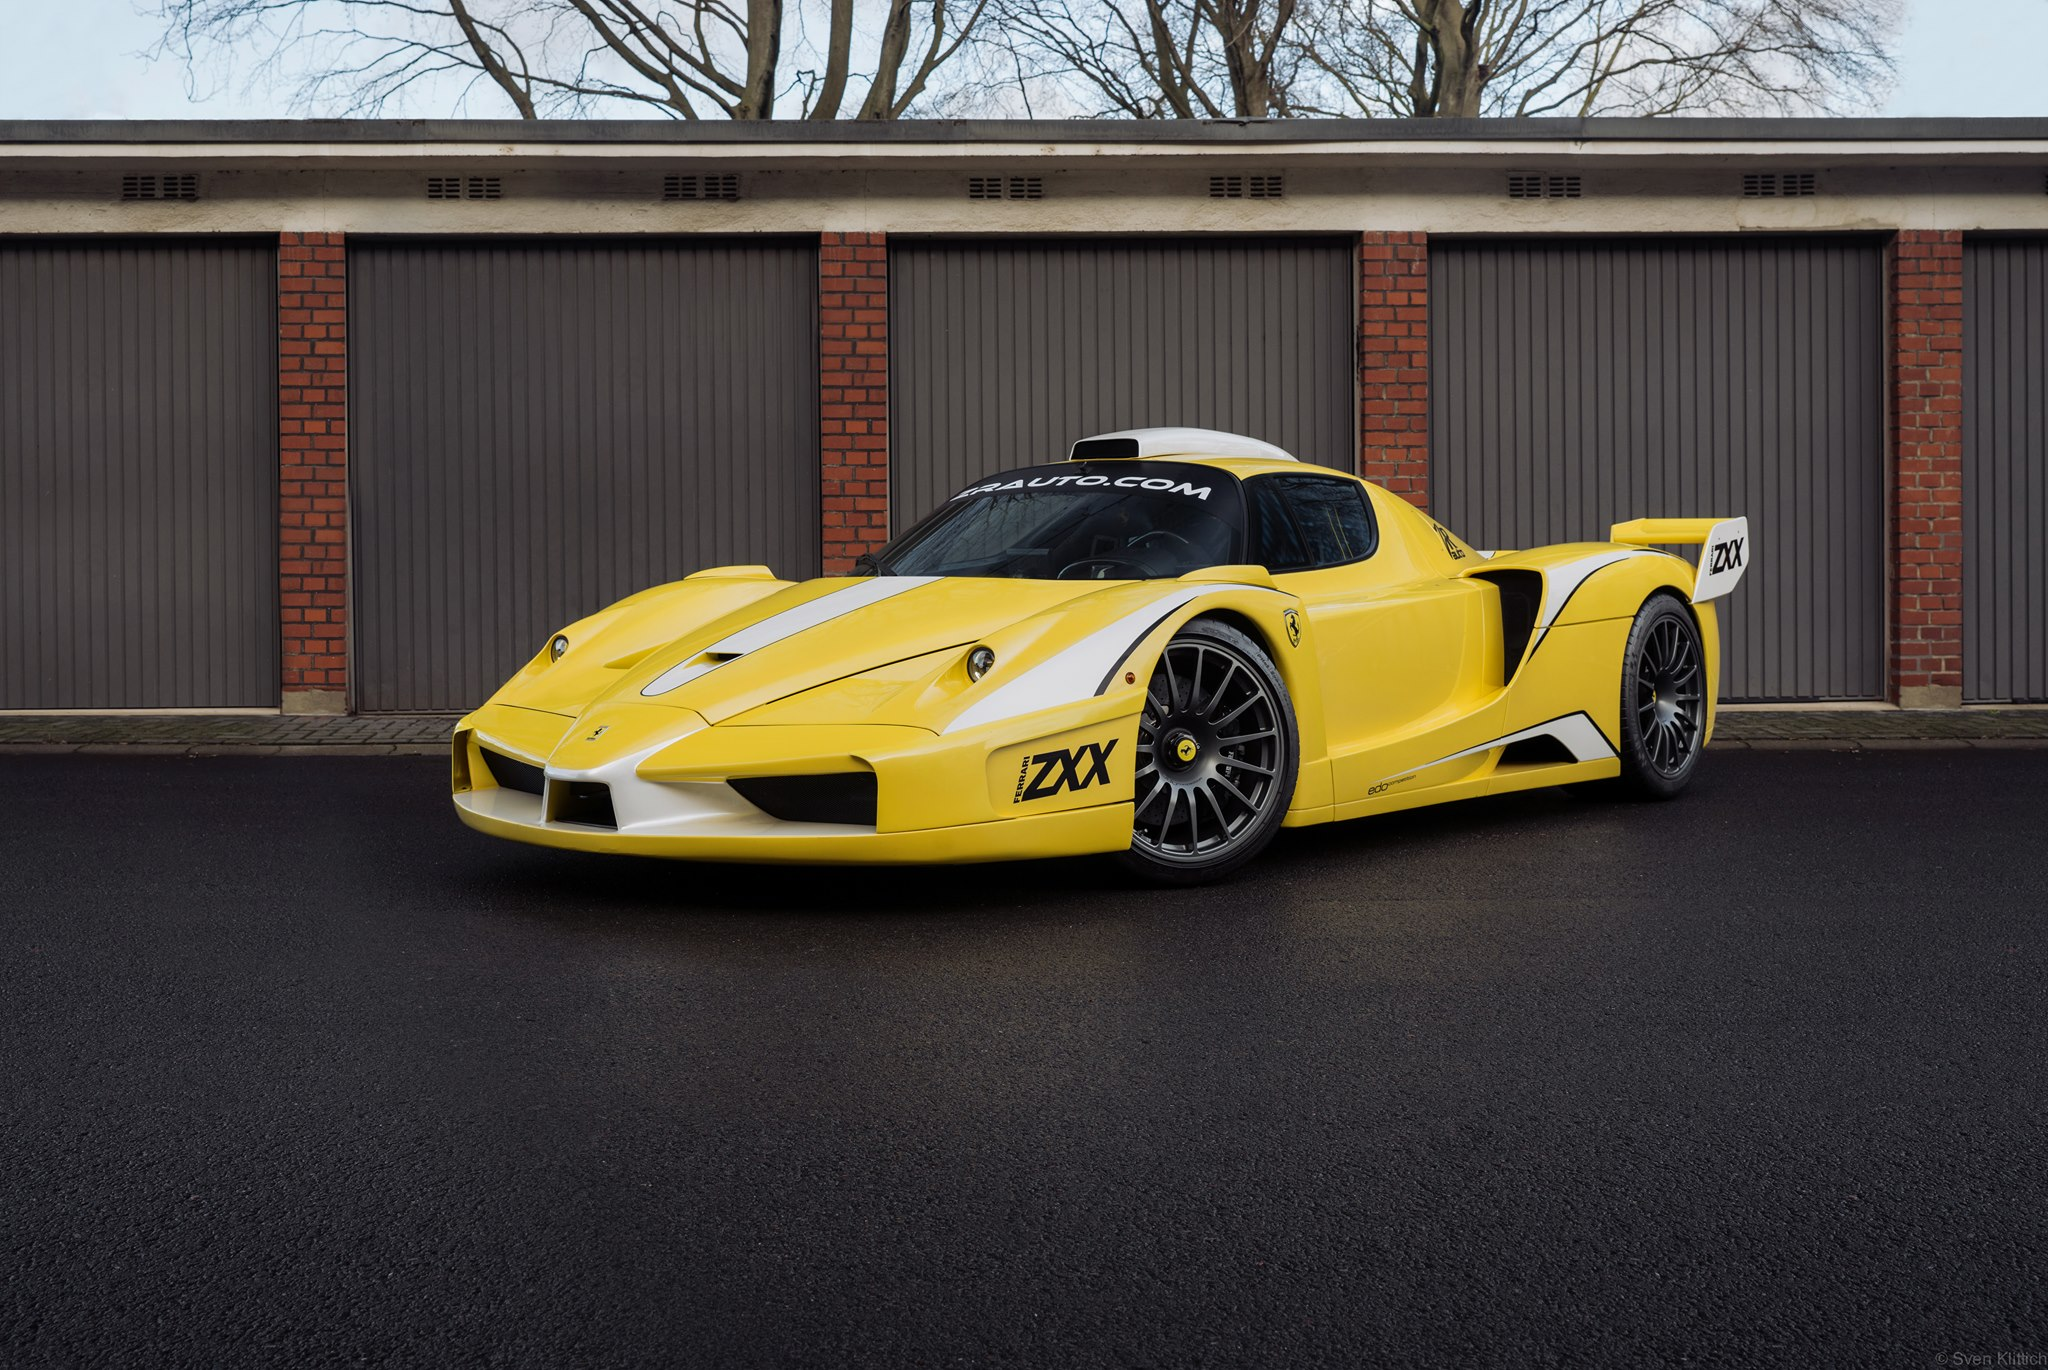 Zr Auto S Ferrari Enzo Zxx Returns To Edo Competition For Upgrades Gtspirit